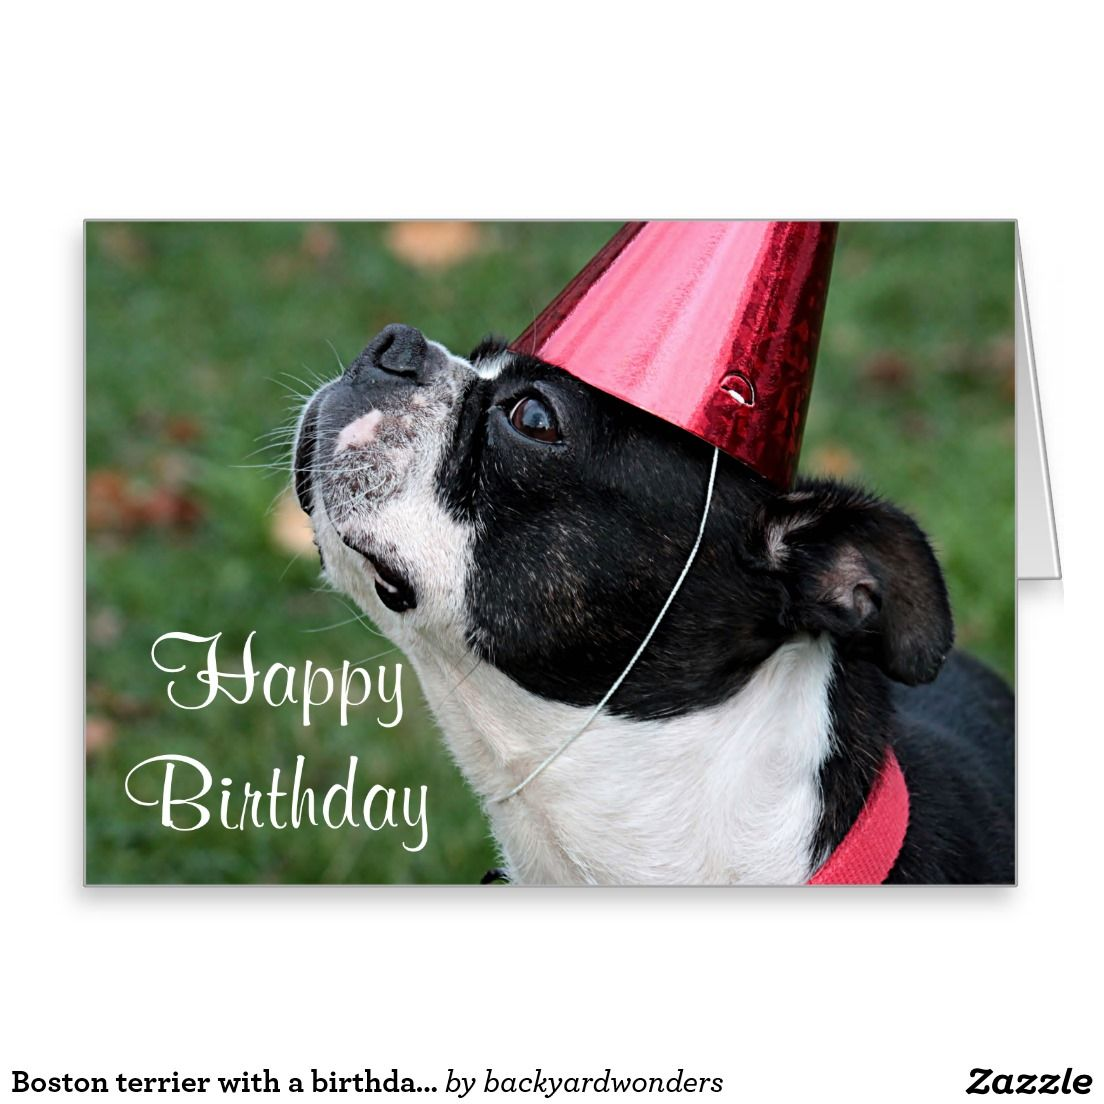 Boston Terrier With A Birthday Wish Card Zazzle Com Birthday Wishes Cards Birthday Wishes Greetings Boston Terrier Gift